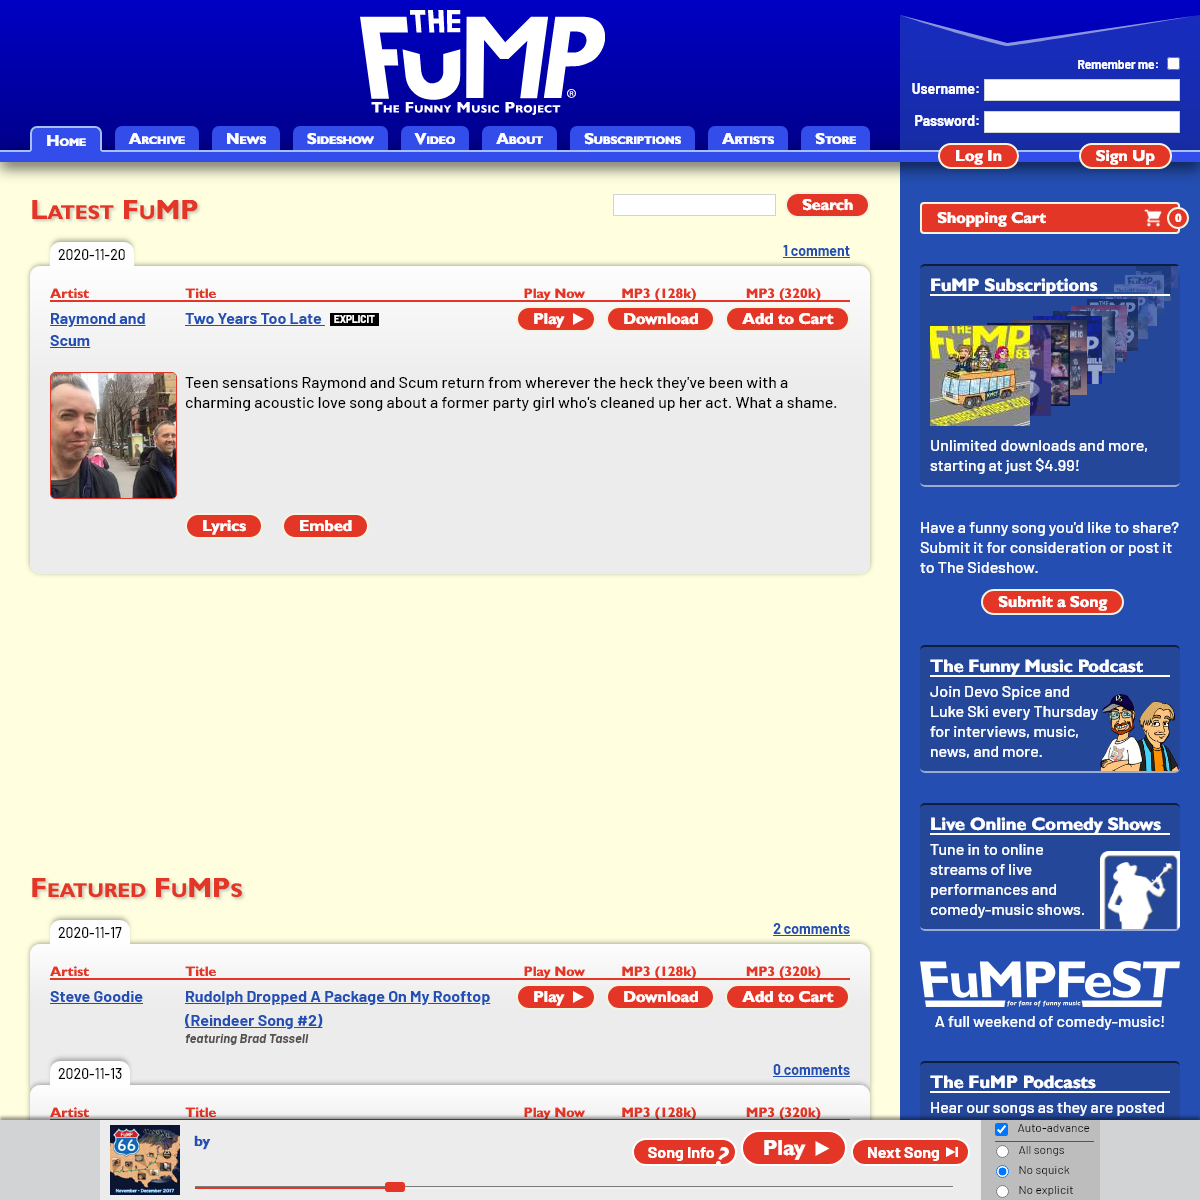 The FuMP - The Funny Music Project